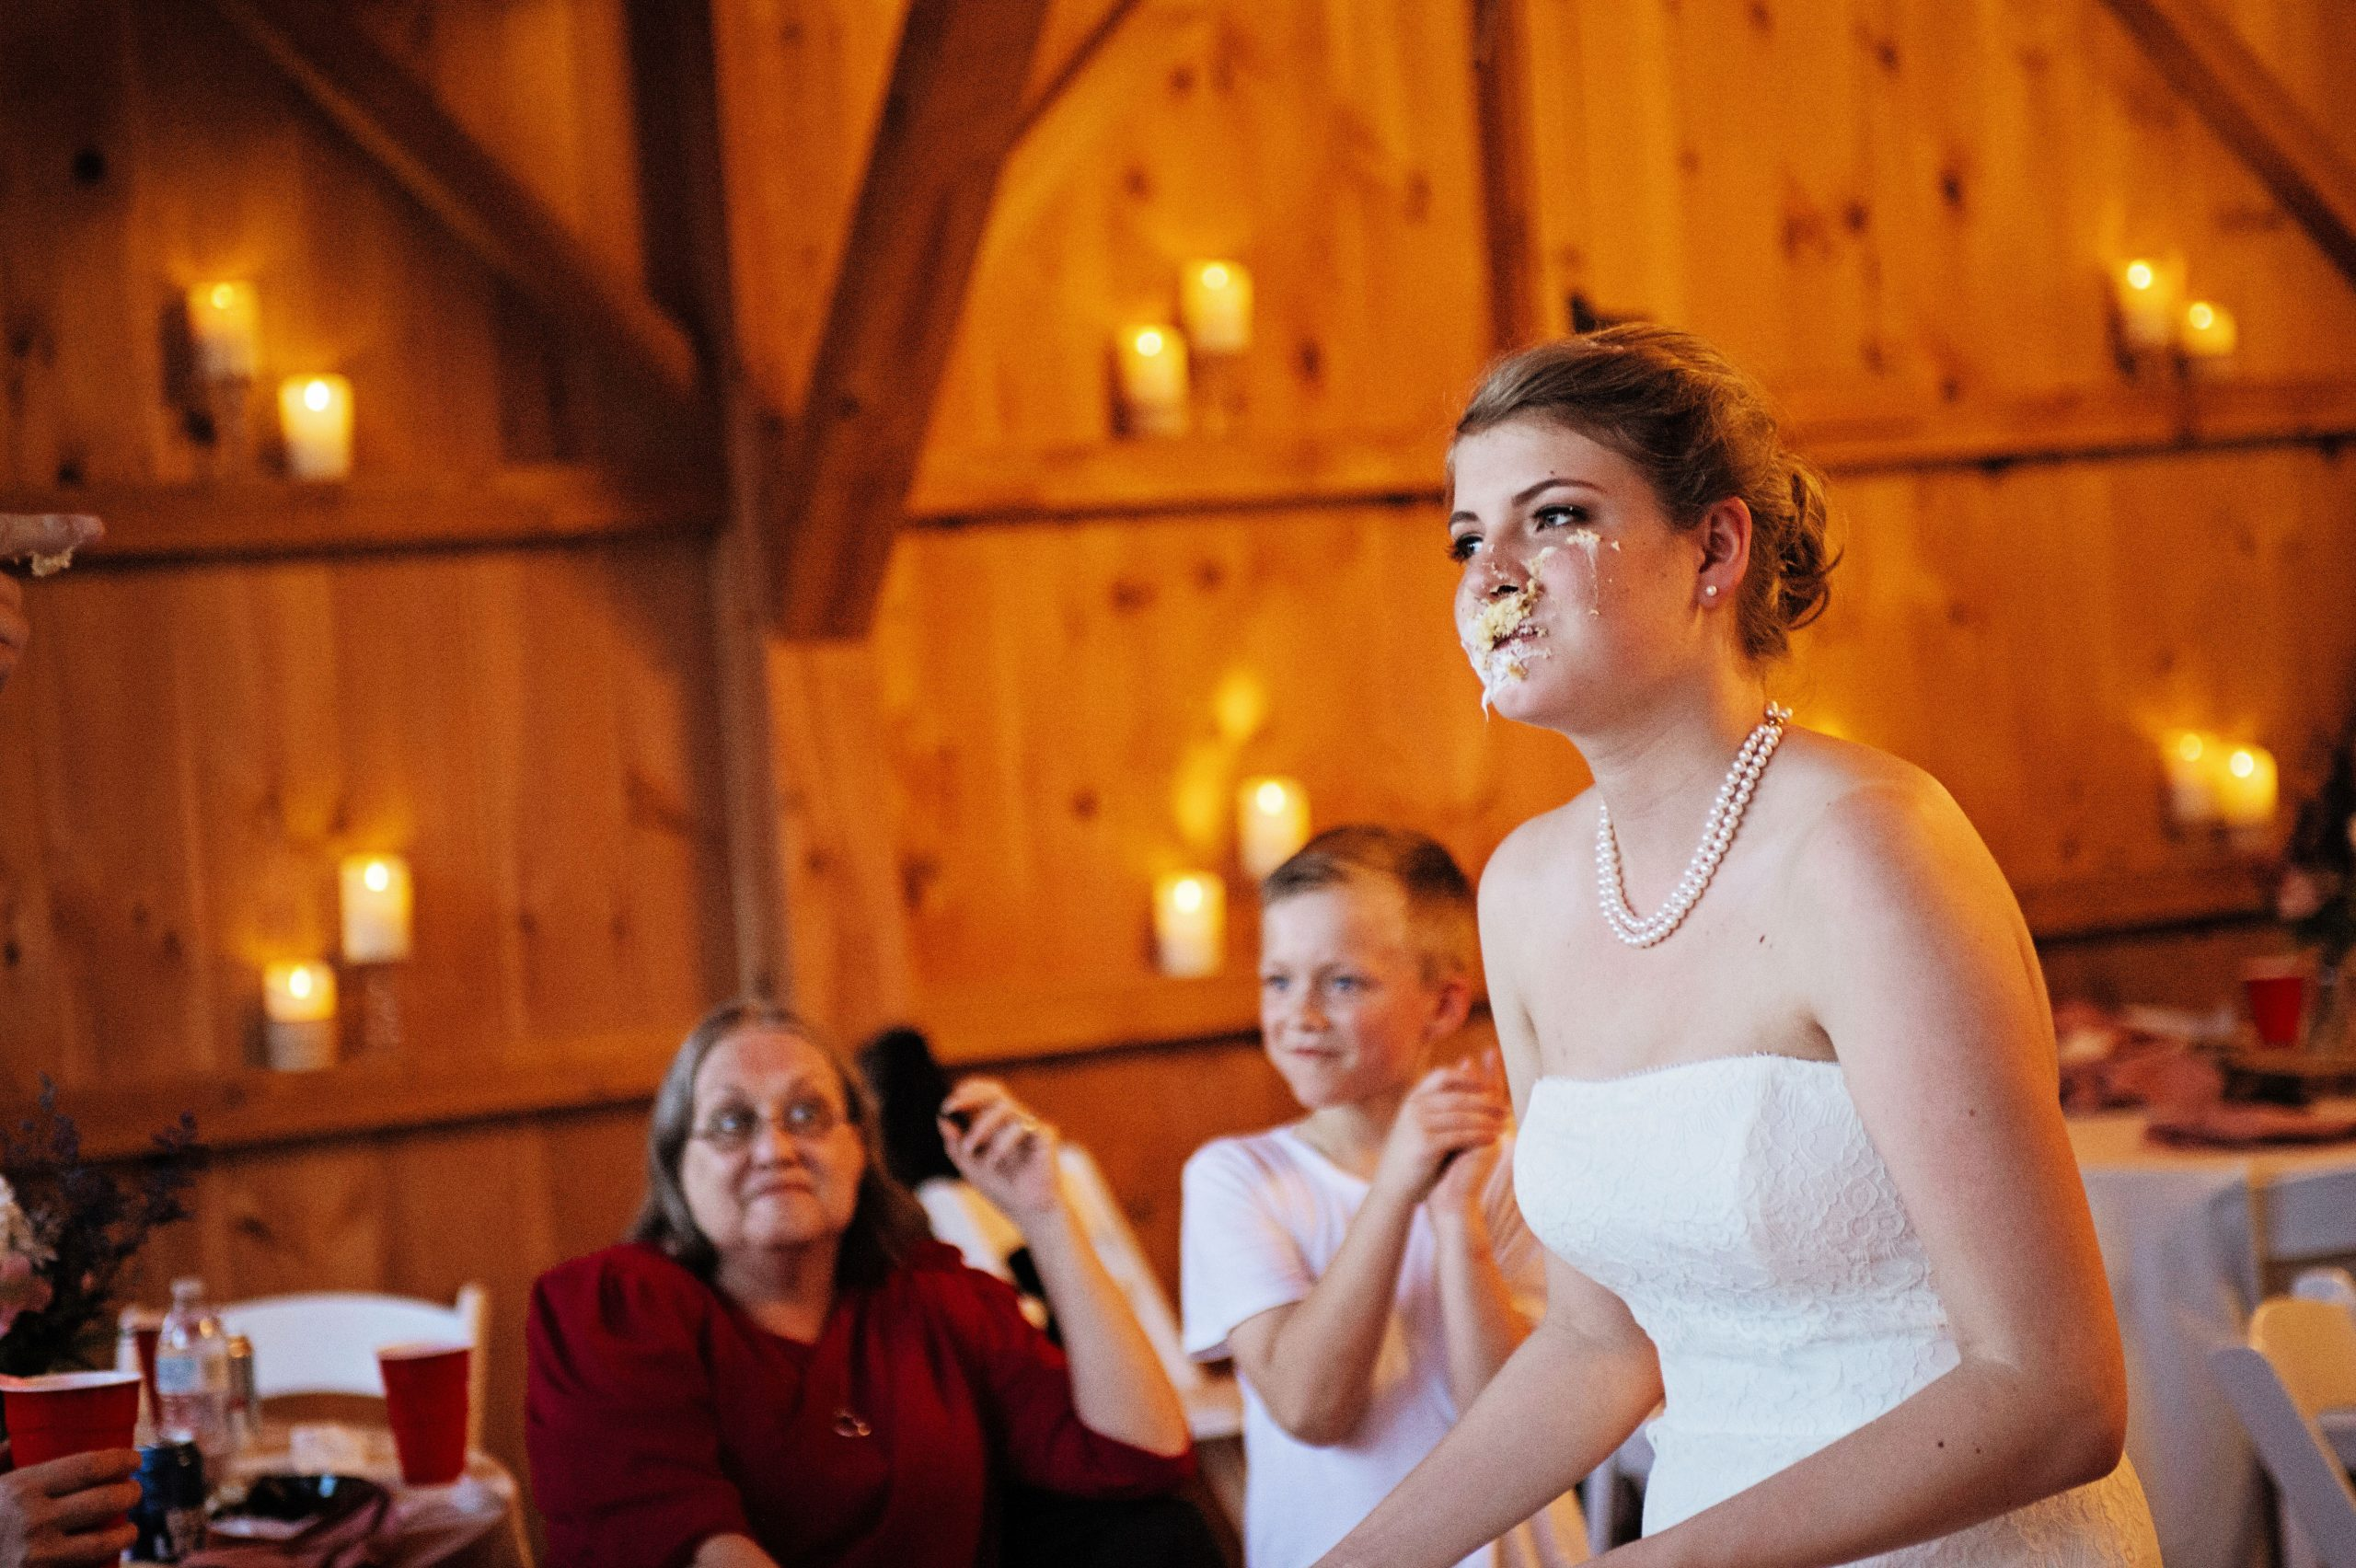 A not so pleased bride stands in the barn of Lakeview Farms in York, PA. Captured by Lovefusion photography, this rustic wedding, turned food fight is a beautiful way to celebrate your special day. Featured on Dream Weddings.